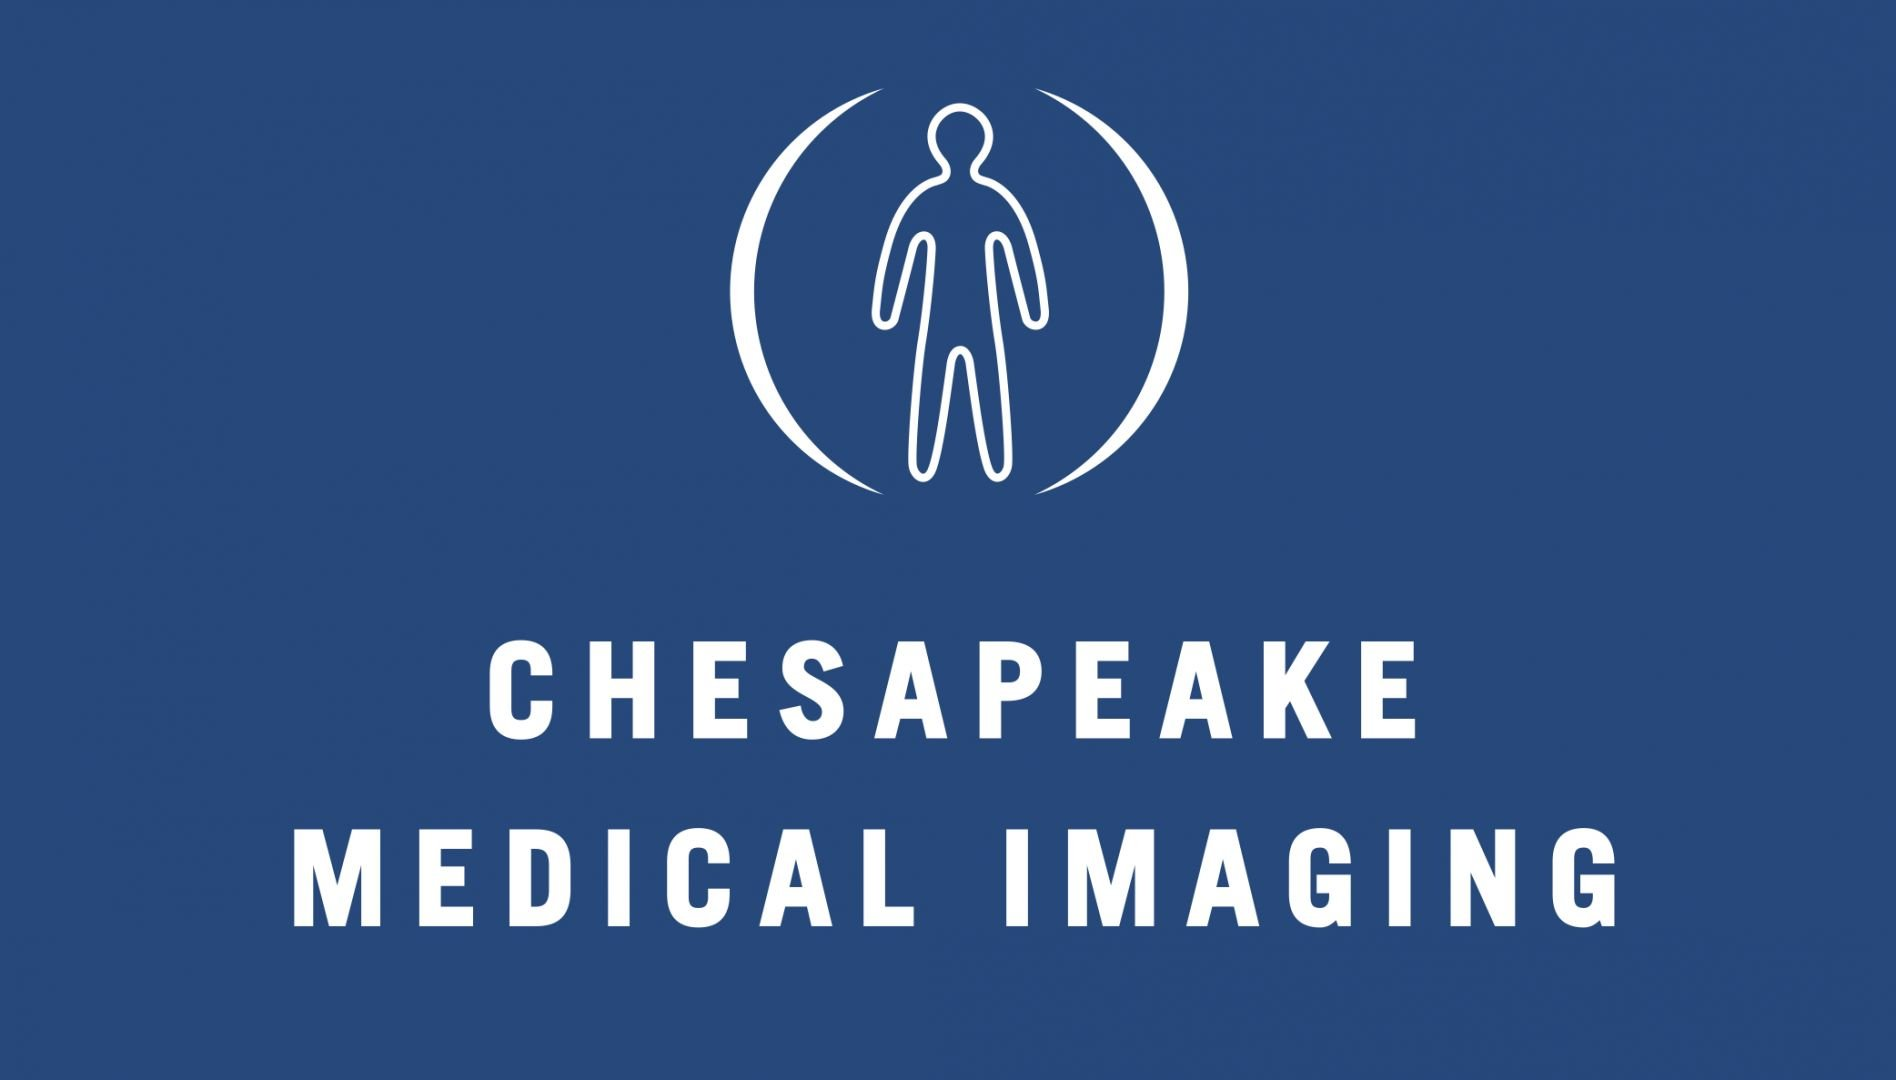 CHESAPEAKE MEDICAL IMAGING Logo 300.jpg